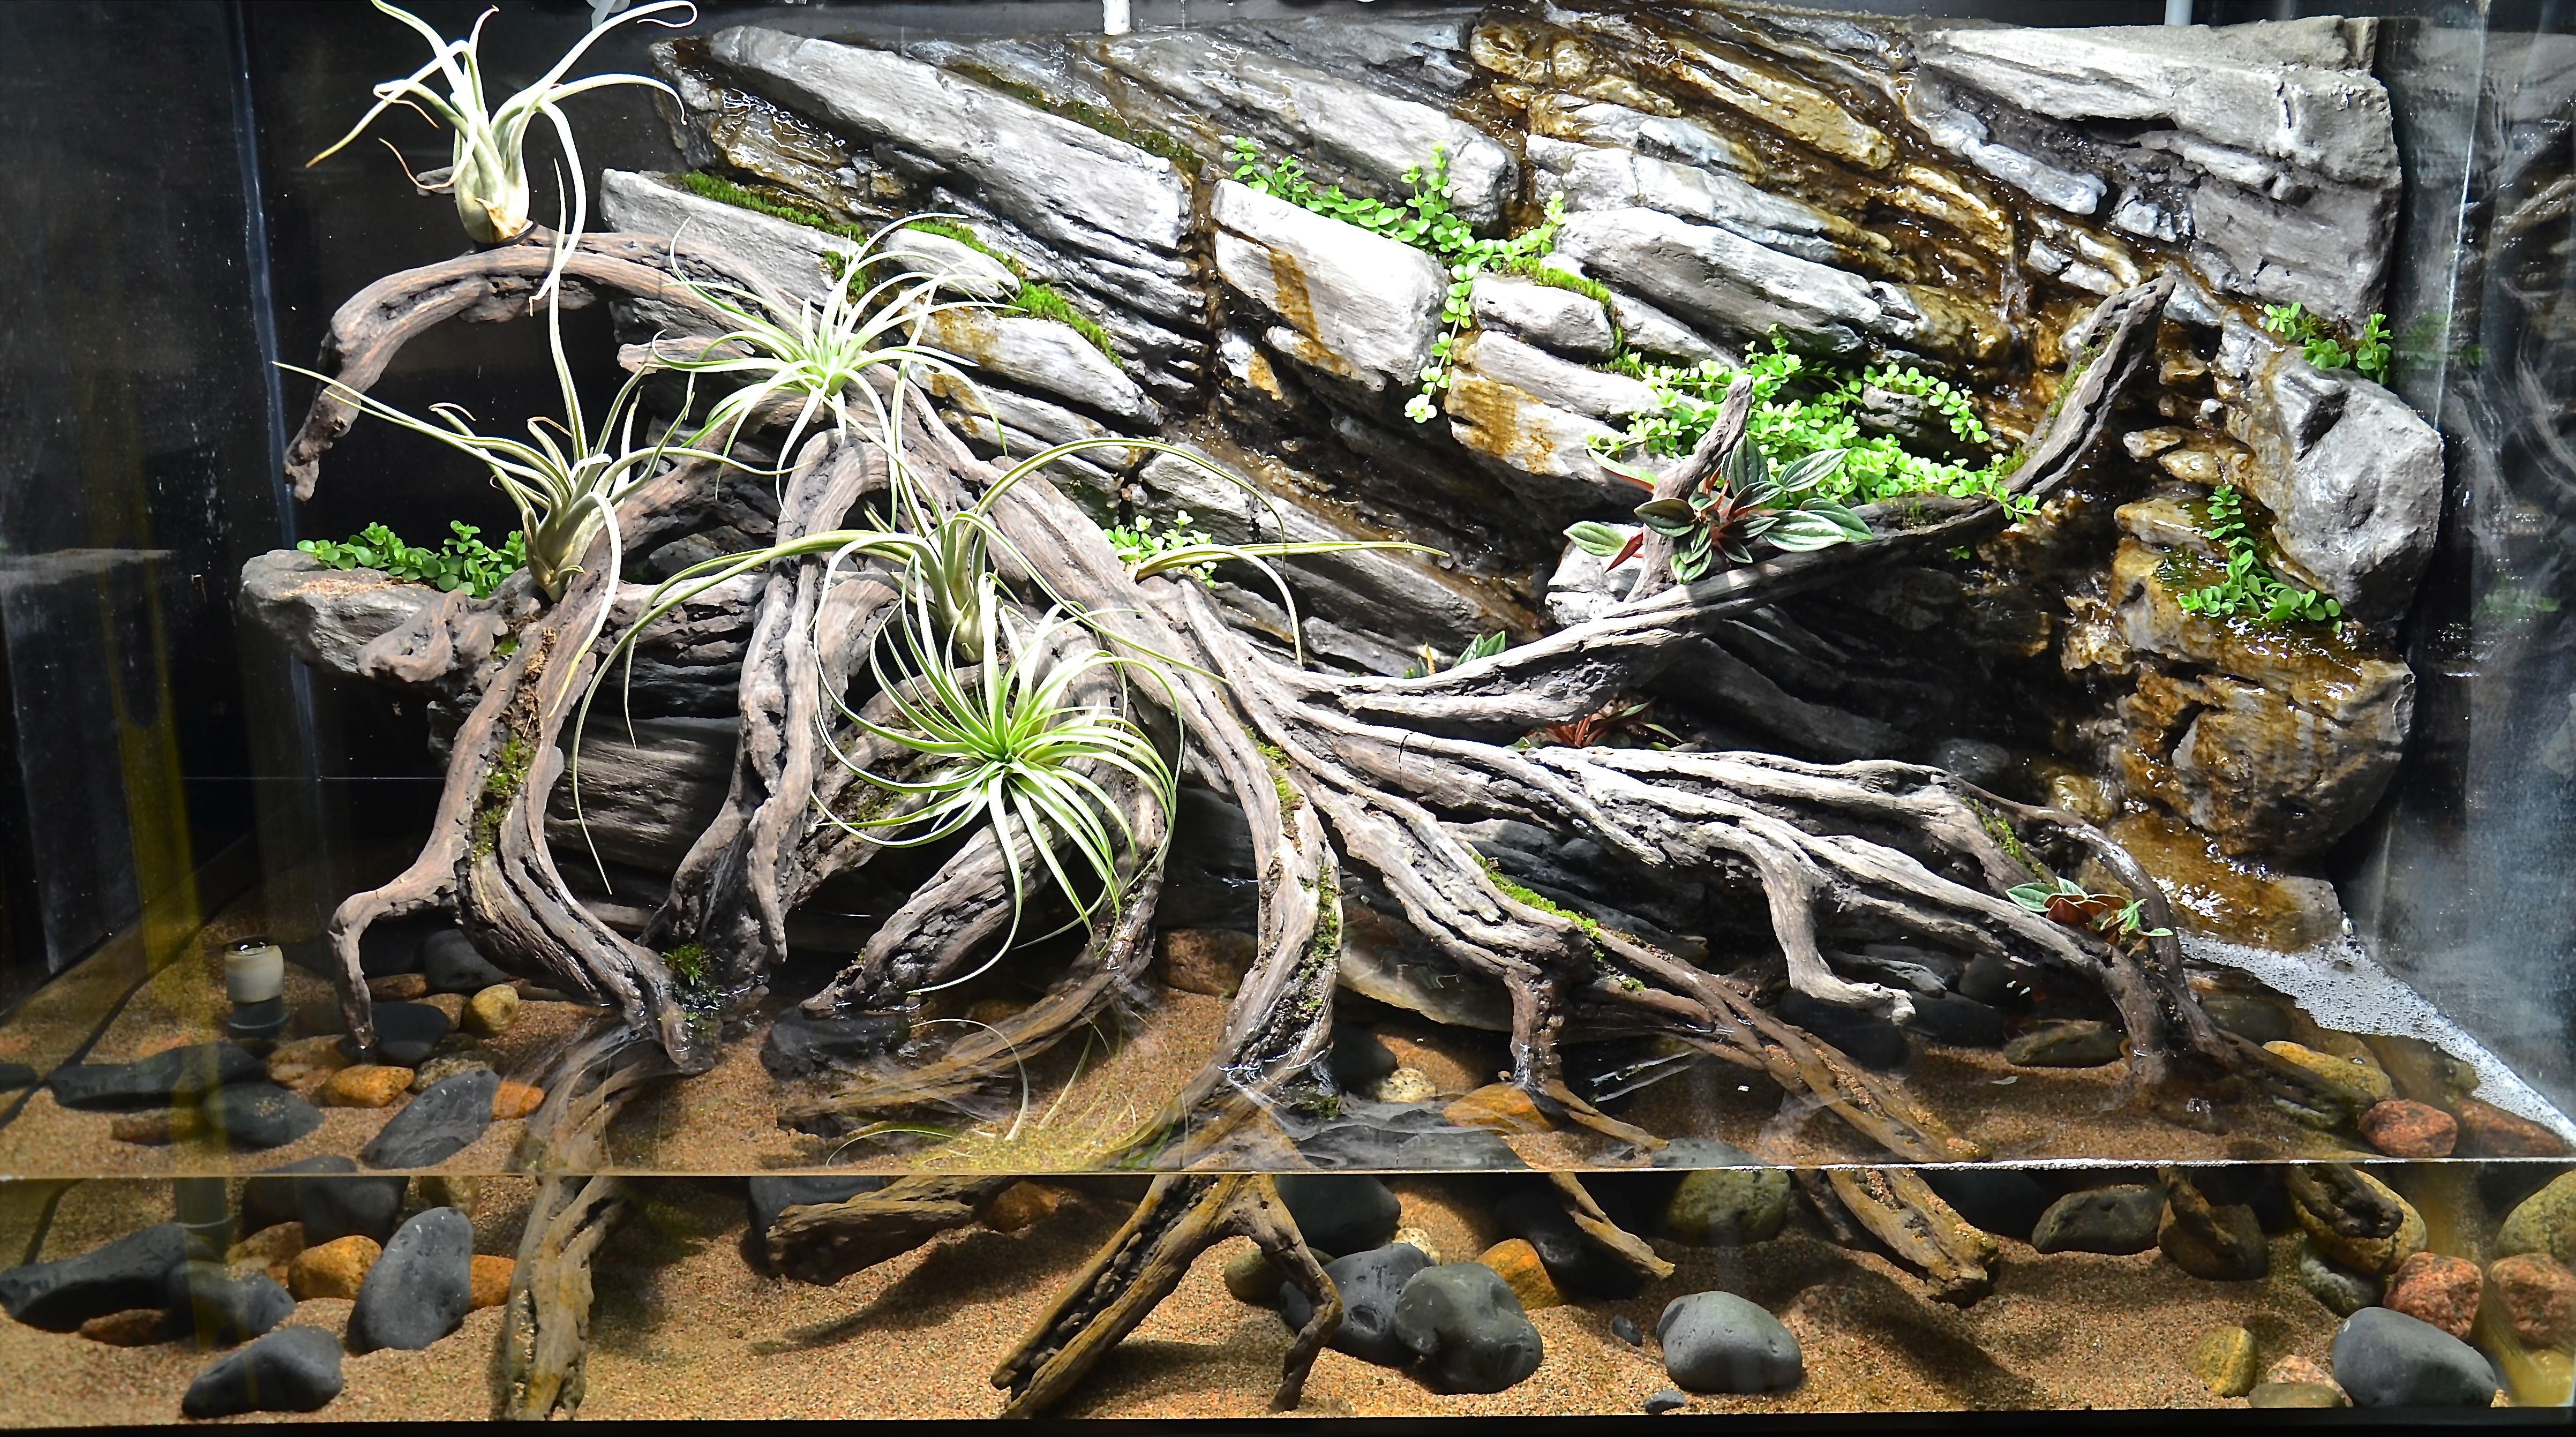 Paludarium 560 l 140 gal diy rock and roots planethx paludarium 560 l 140 gal diy rock and roots fandeluxe Ebook collections